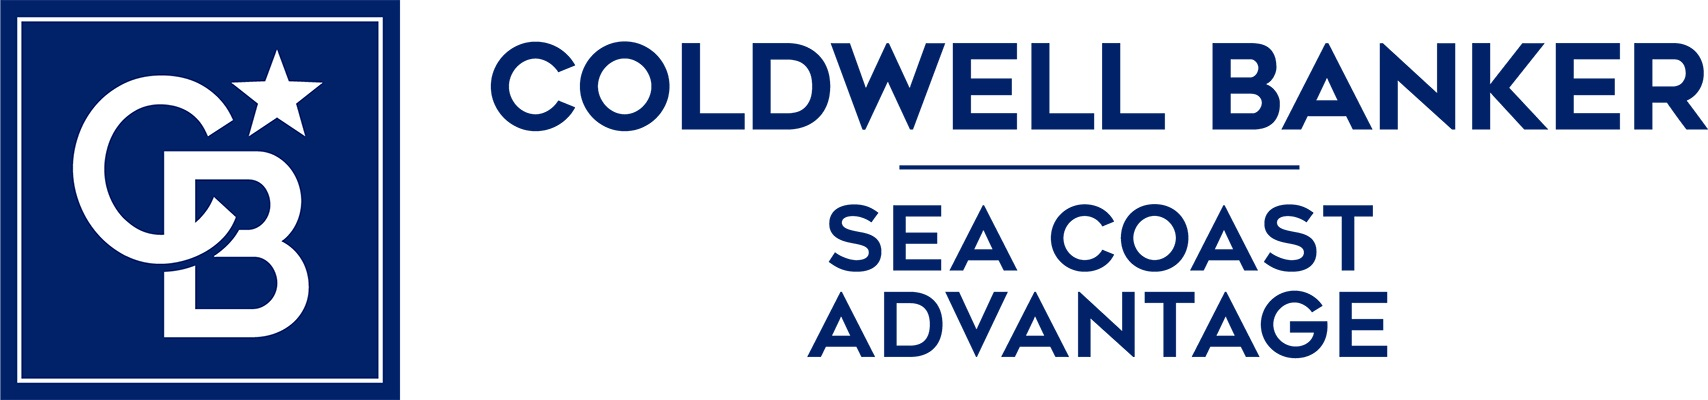 Jaime Eannarino - Coldwell Banker Sea Coast Advantage Realty Logo